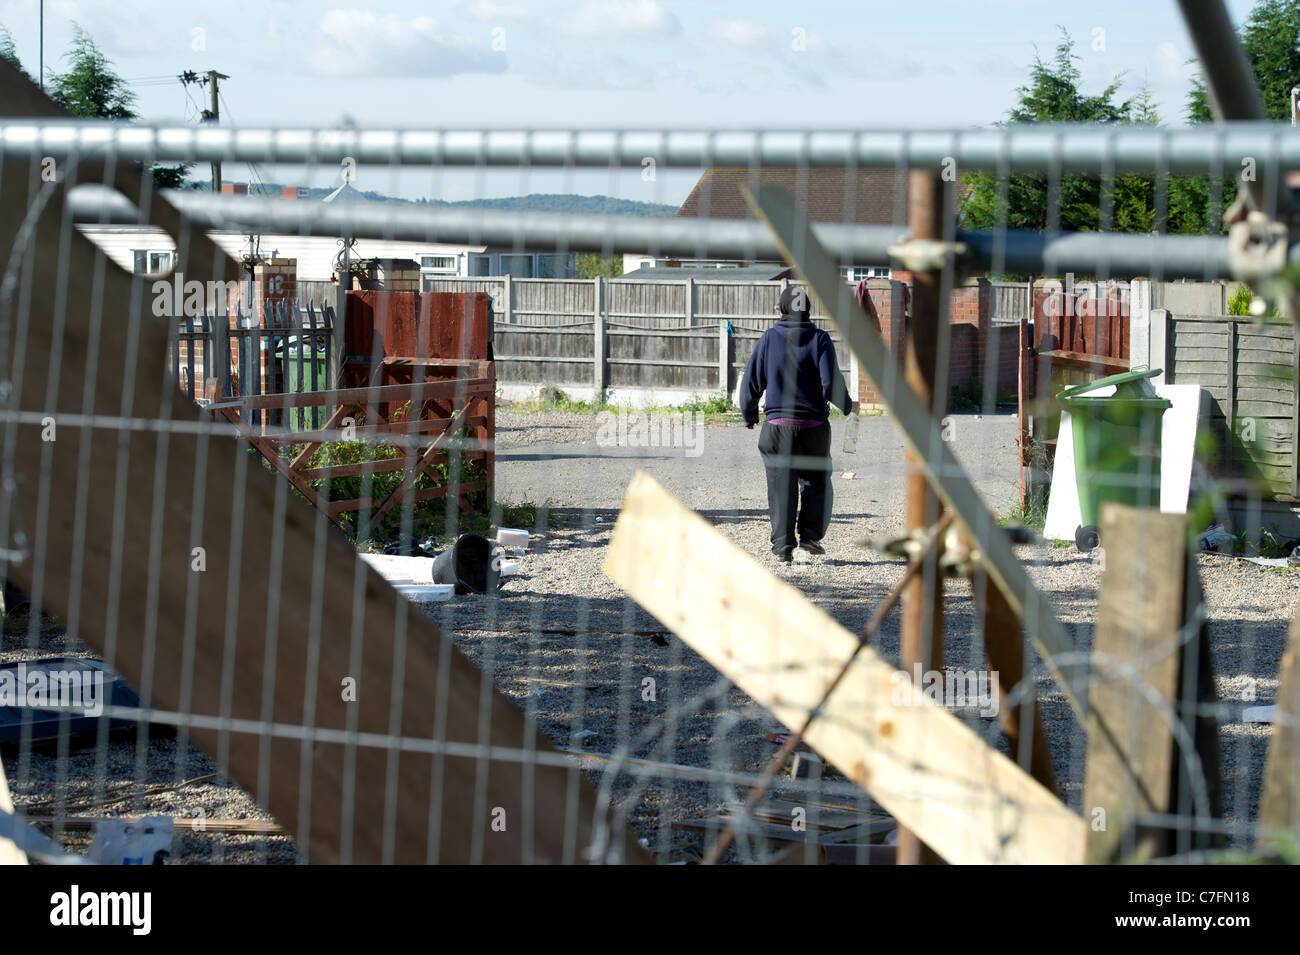 Dale Farm eviction. Protester walking around the illegal traveller site seen through the fencing erected to keep - Stock Image